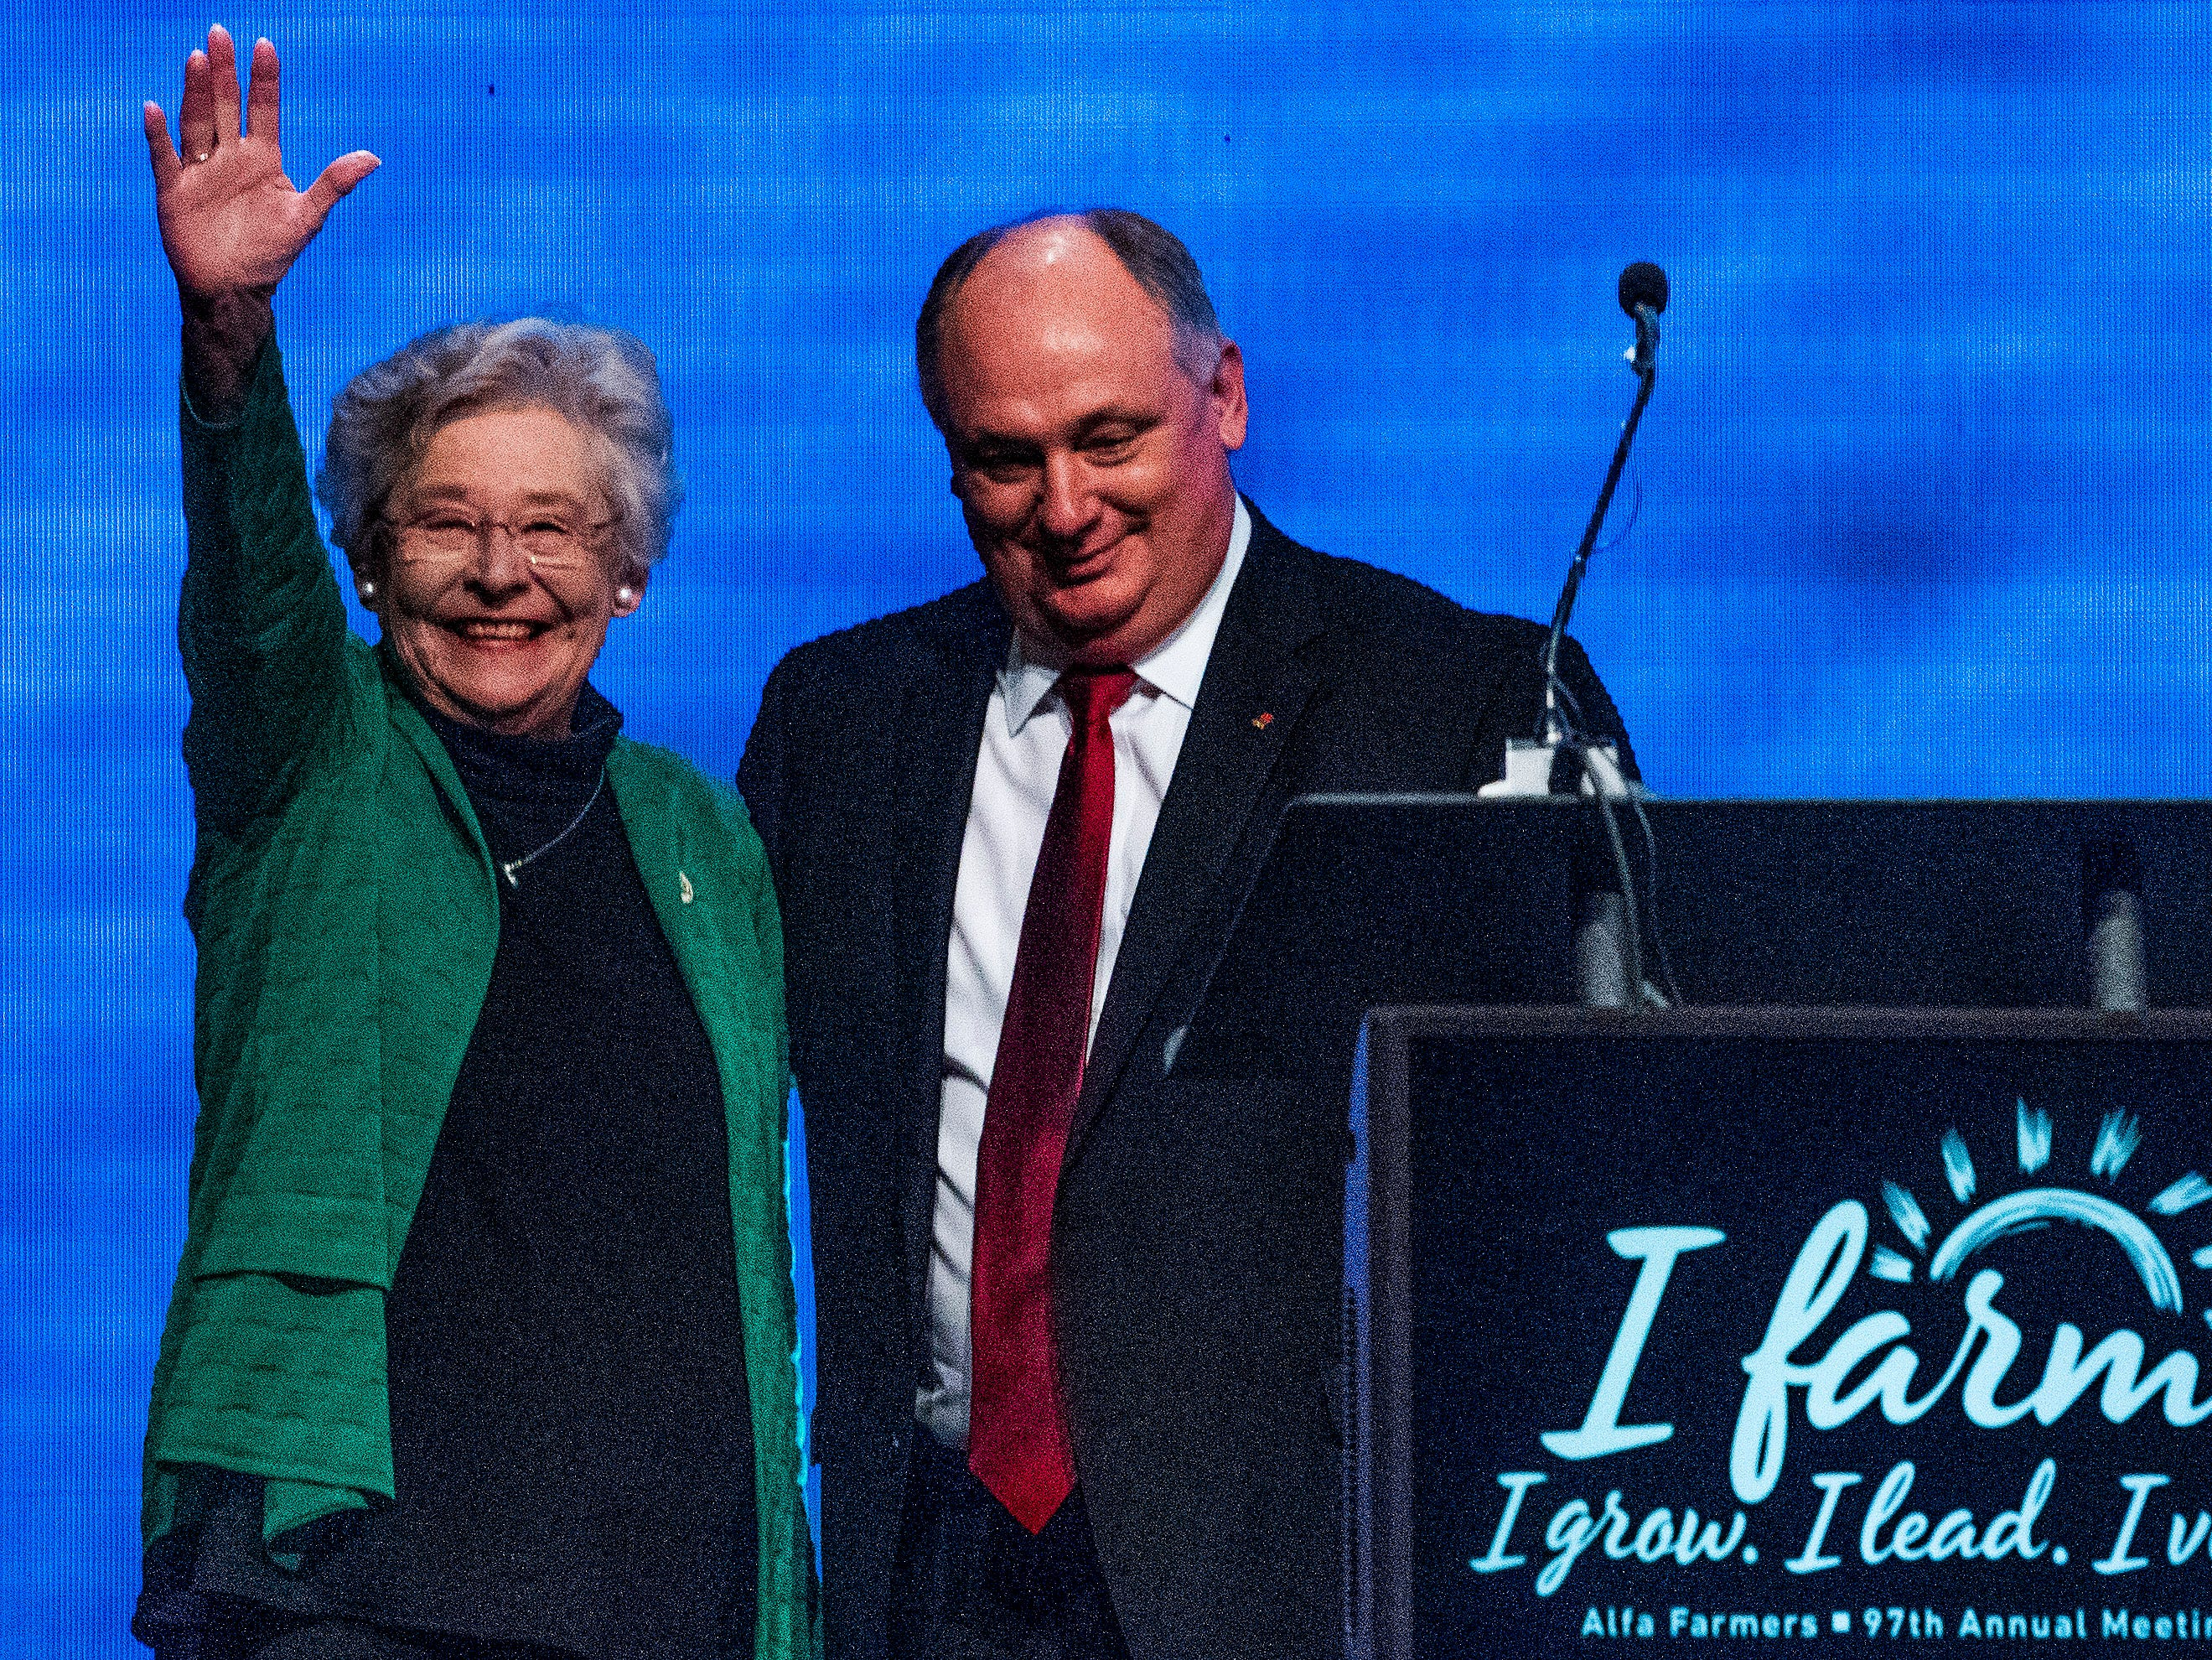 Governor Kay Ivey is greeted by Alabama Farmers Federation President during the Alfa Farmers Annual Meeting at the Convention Center in Montgomery, Ala., on Monday evening December 3, 2018.